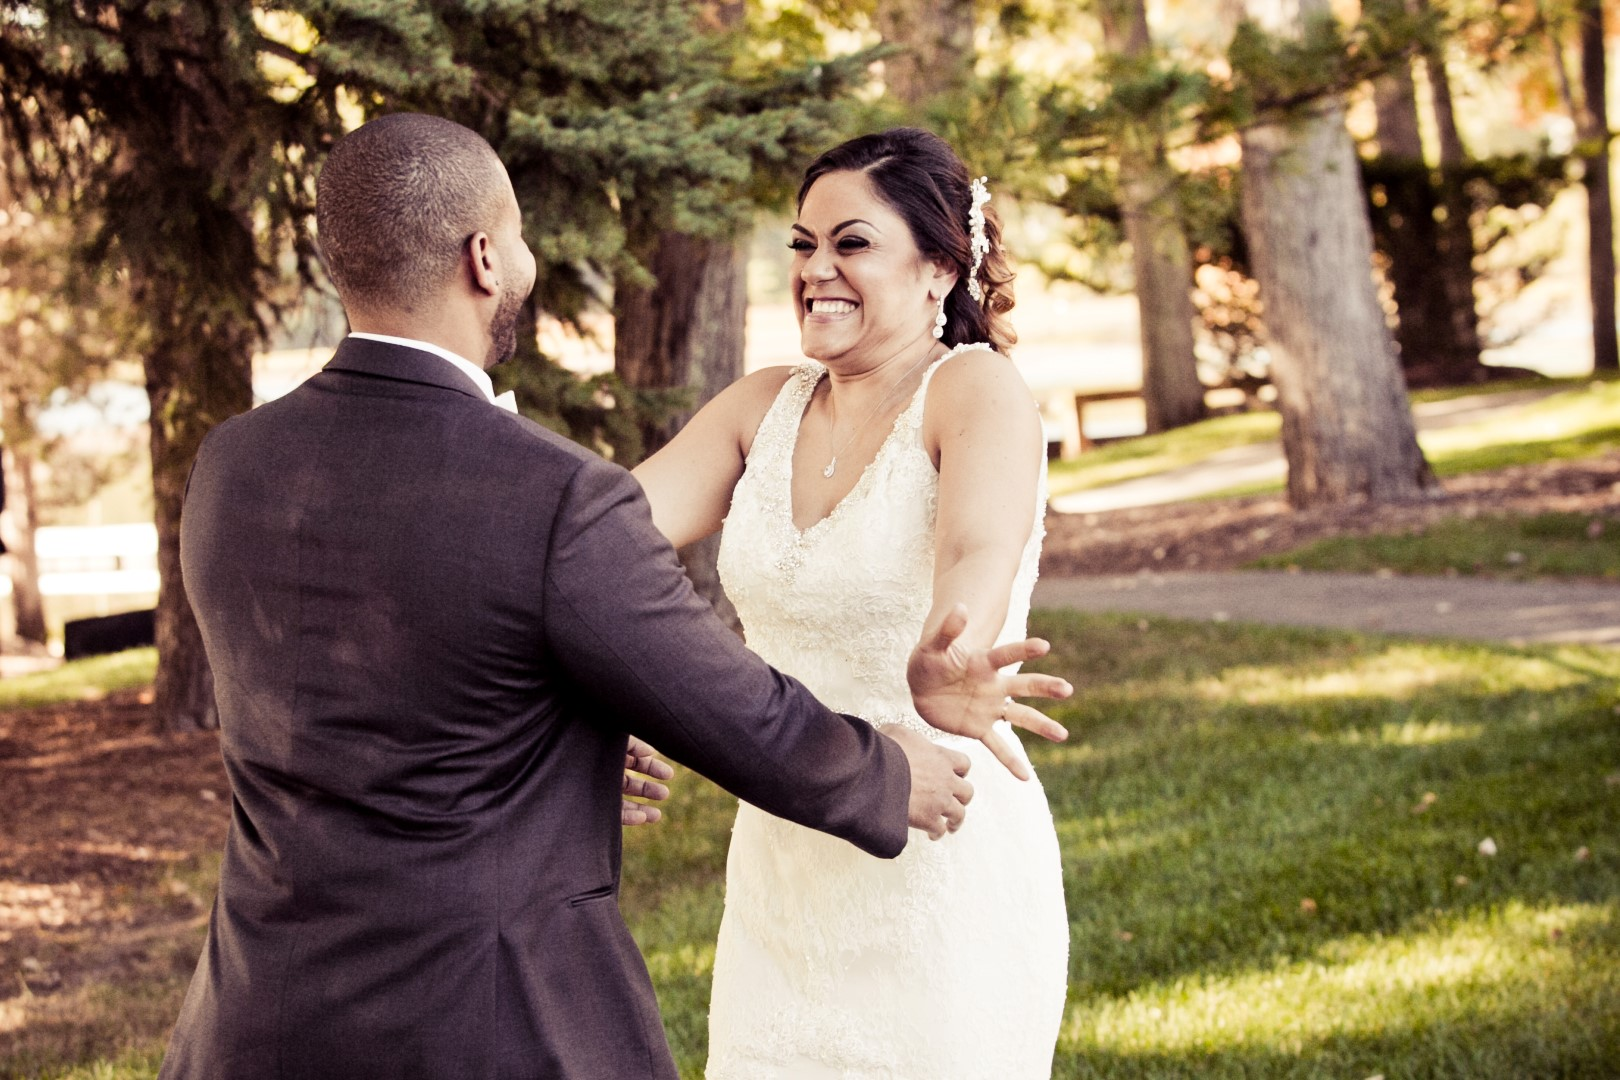 Reasons Why You Should Have the First Look Before Walking Down The Aisle